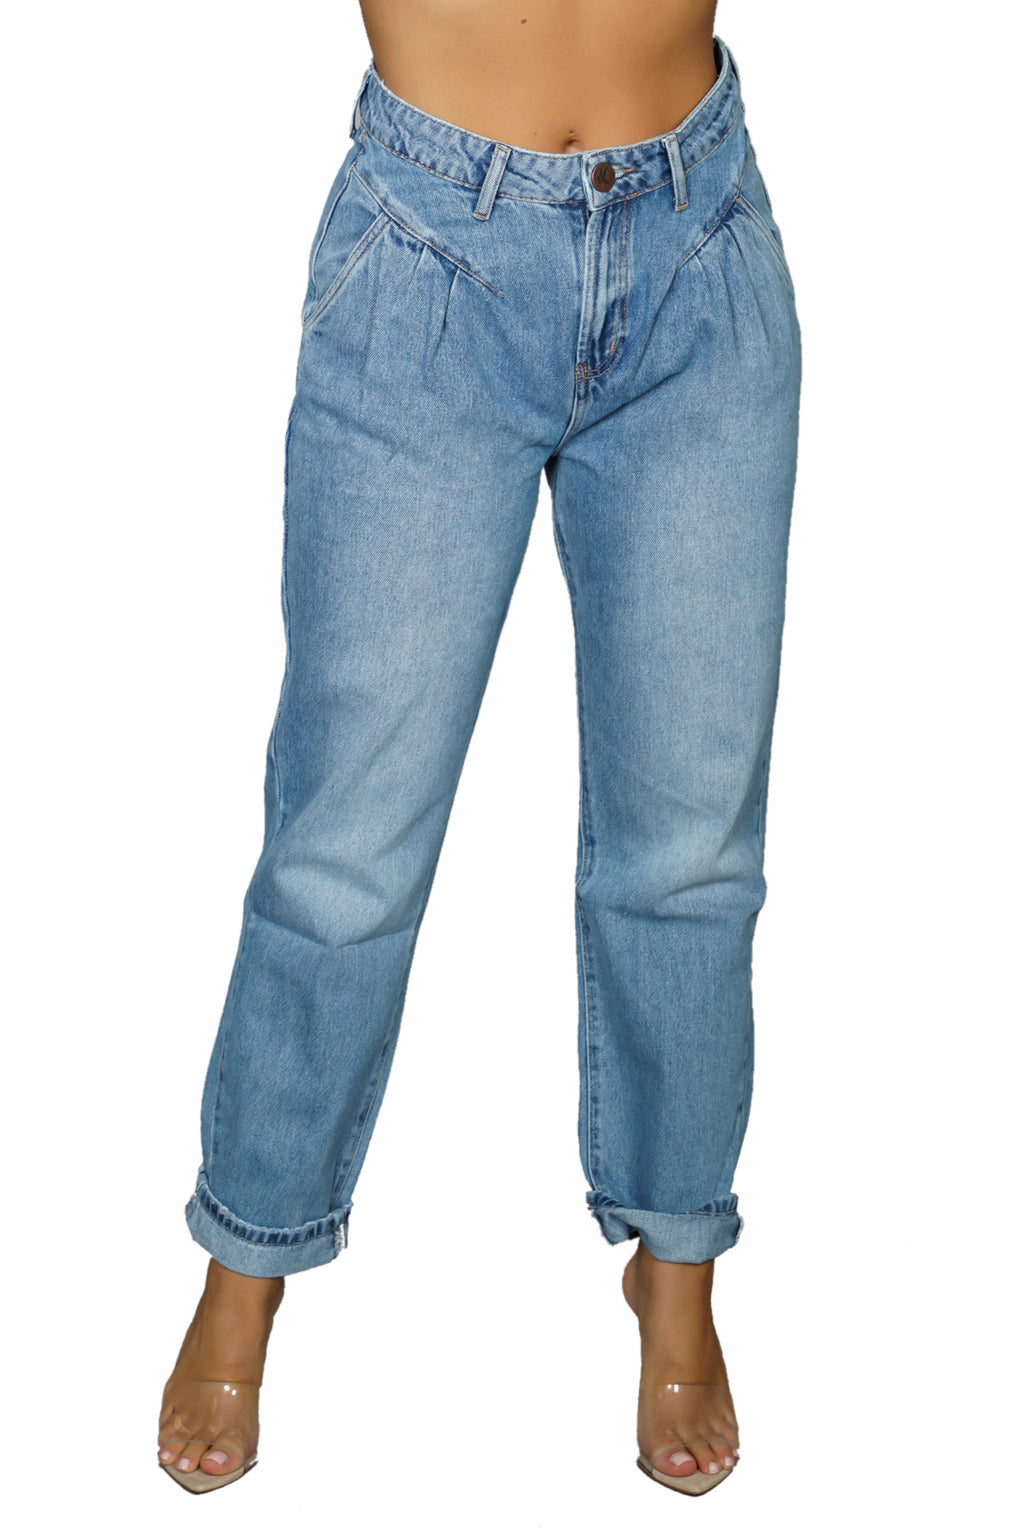 One Teaspoon Streetwalkers HW 80's Jean